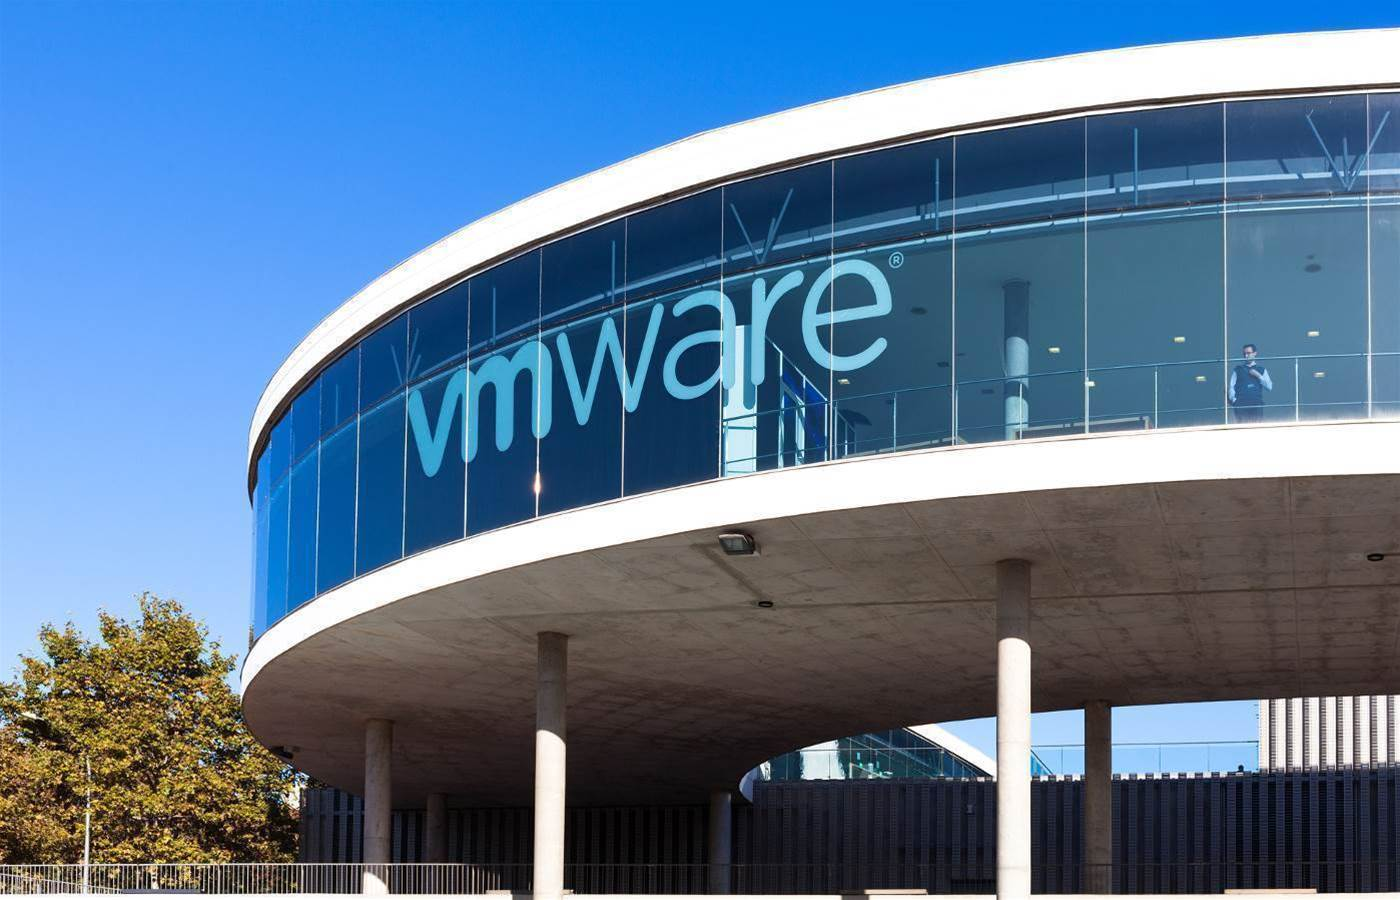 IBM Watson is already on VMware's Workspace ONE platform